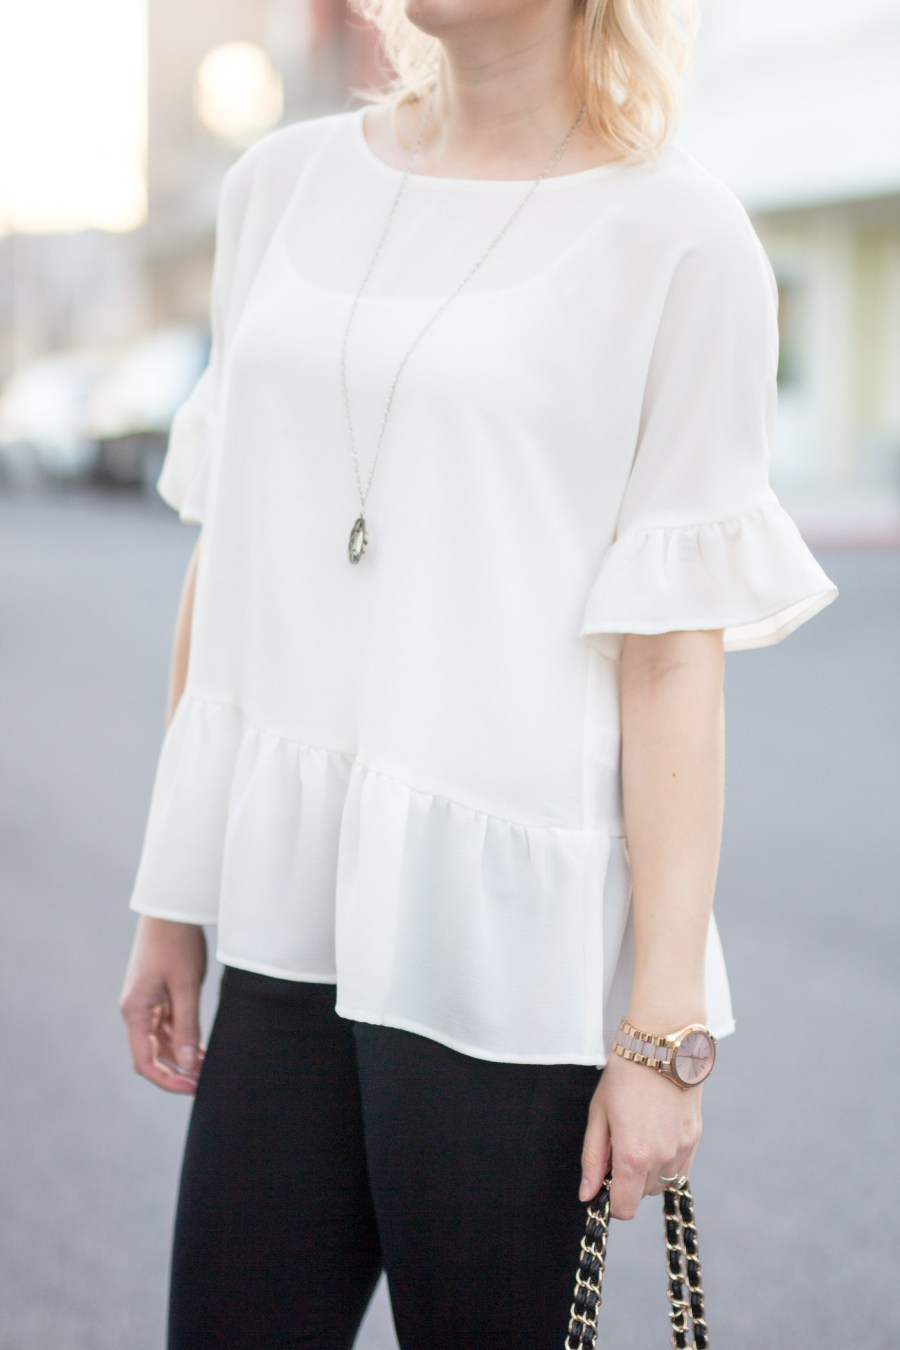 The Perfect White Ruffle Blouse Under $50, fashion blog, Treats and Trends, Nordstrom ruffle top, spring outfit idea, black and white outfit